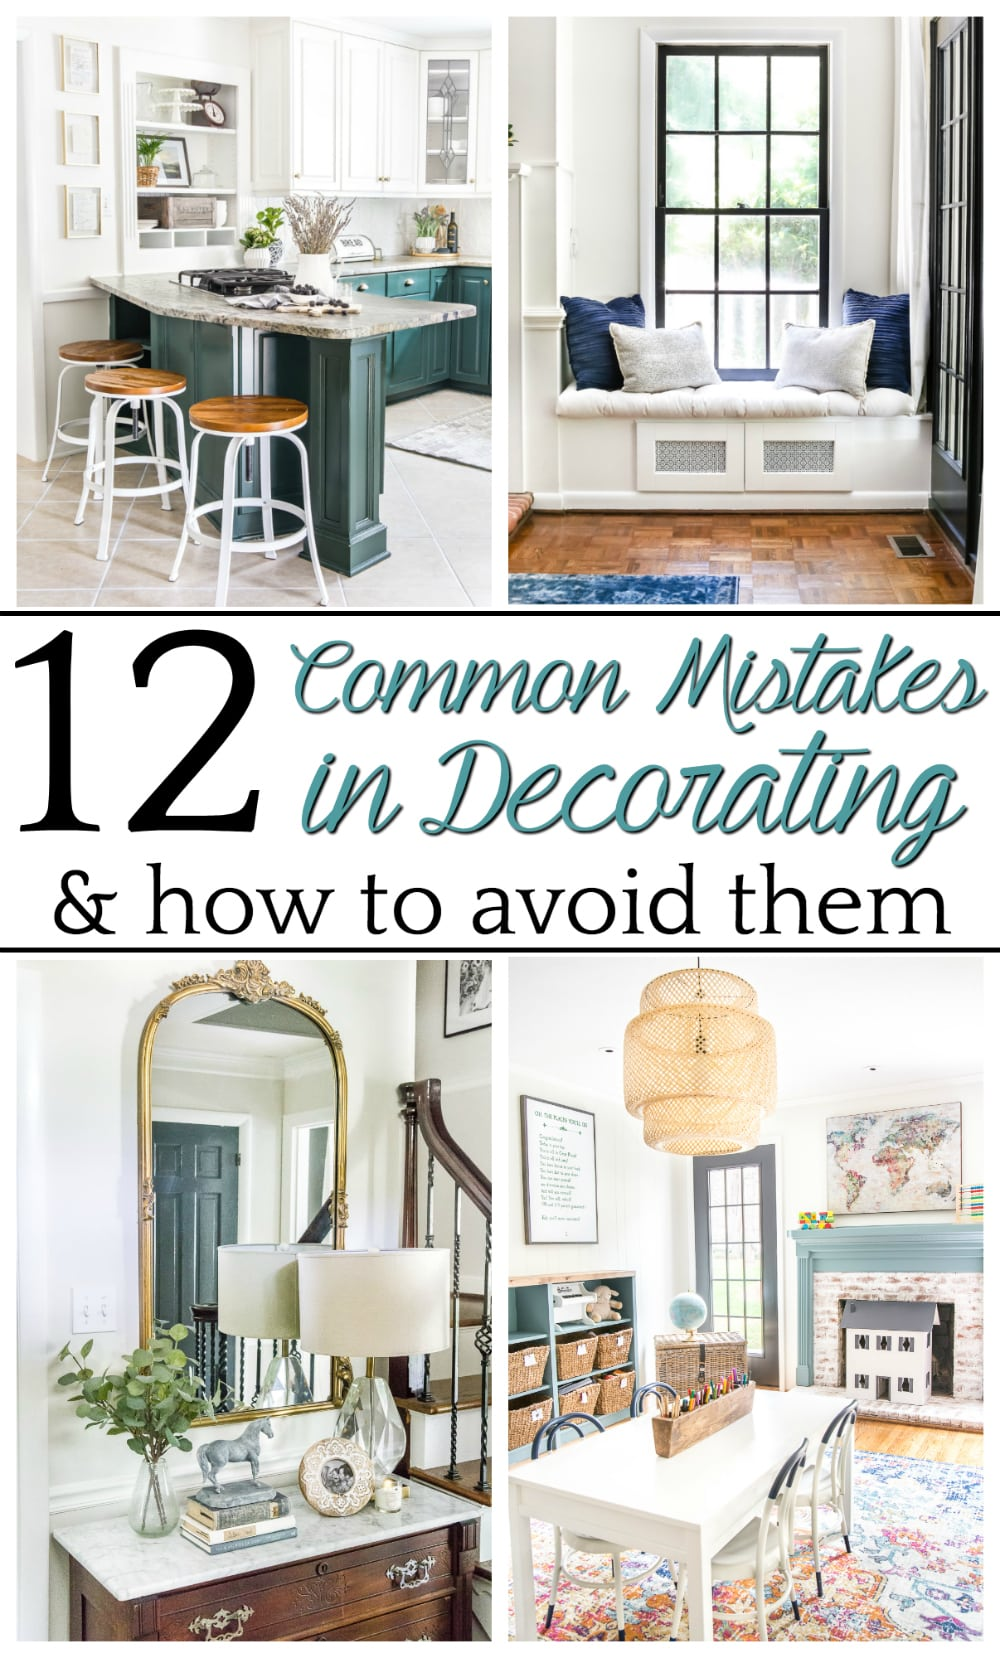 12 of the most common decorating mistakes most people make when choosing paint colors, furniture layouts, and styling, and tips on how to avoid them. #decorating #decoratingmistakes #decoratingtips